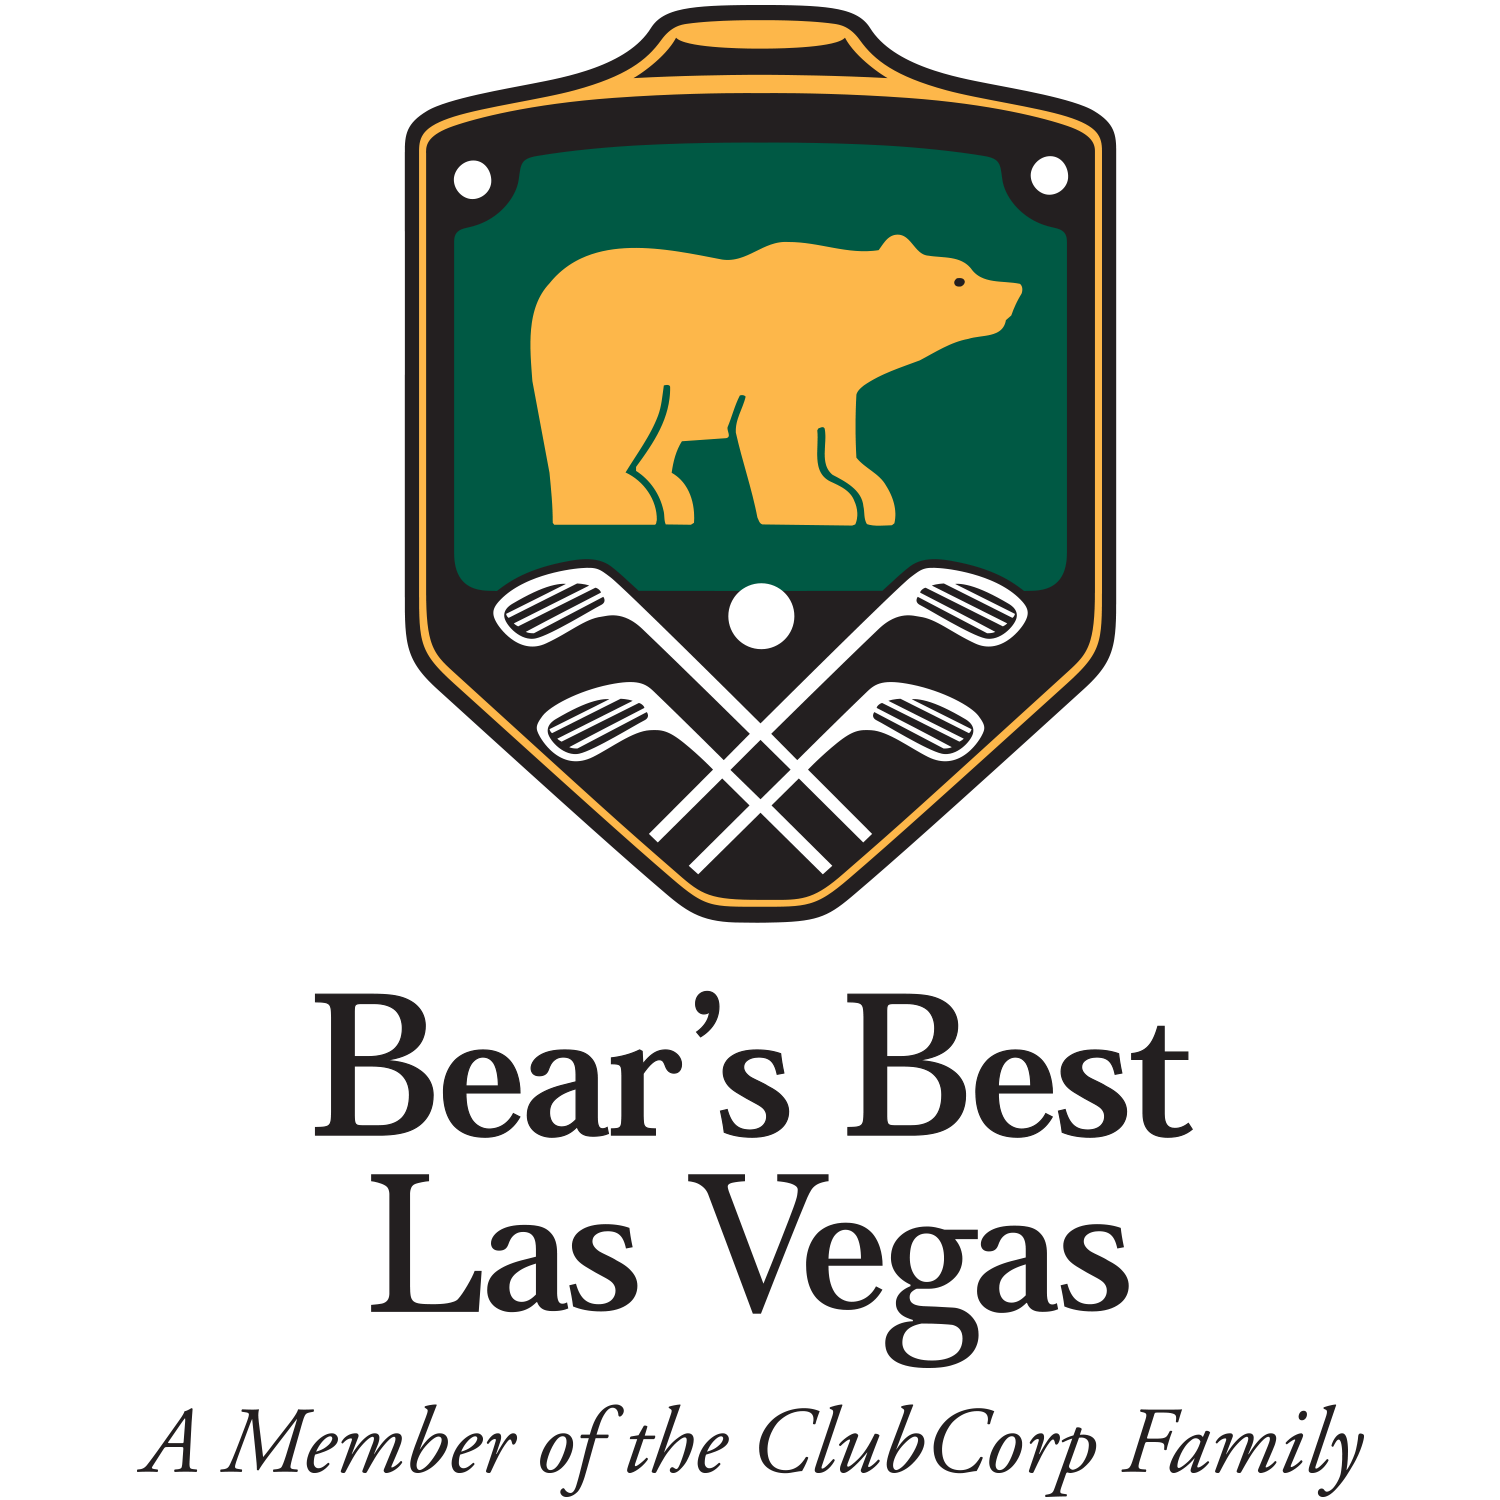 Bear's Best Las Vegas